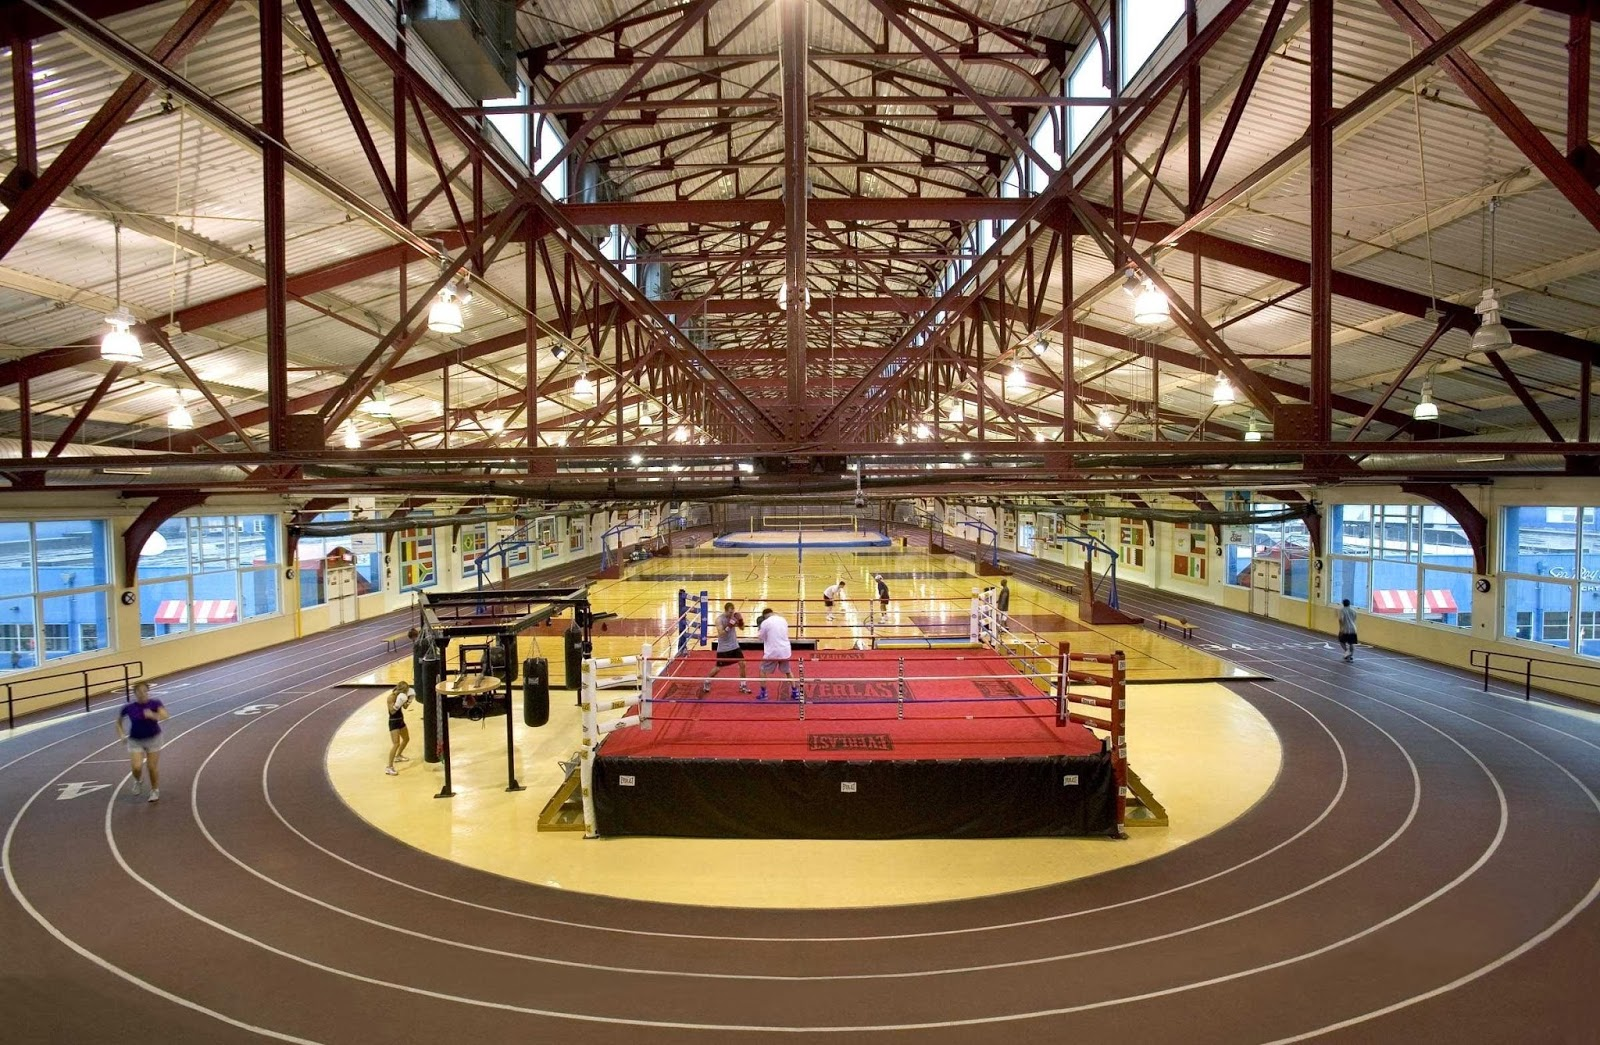 The Sports Center at Chelsea Piers - photo